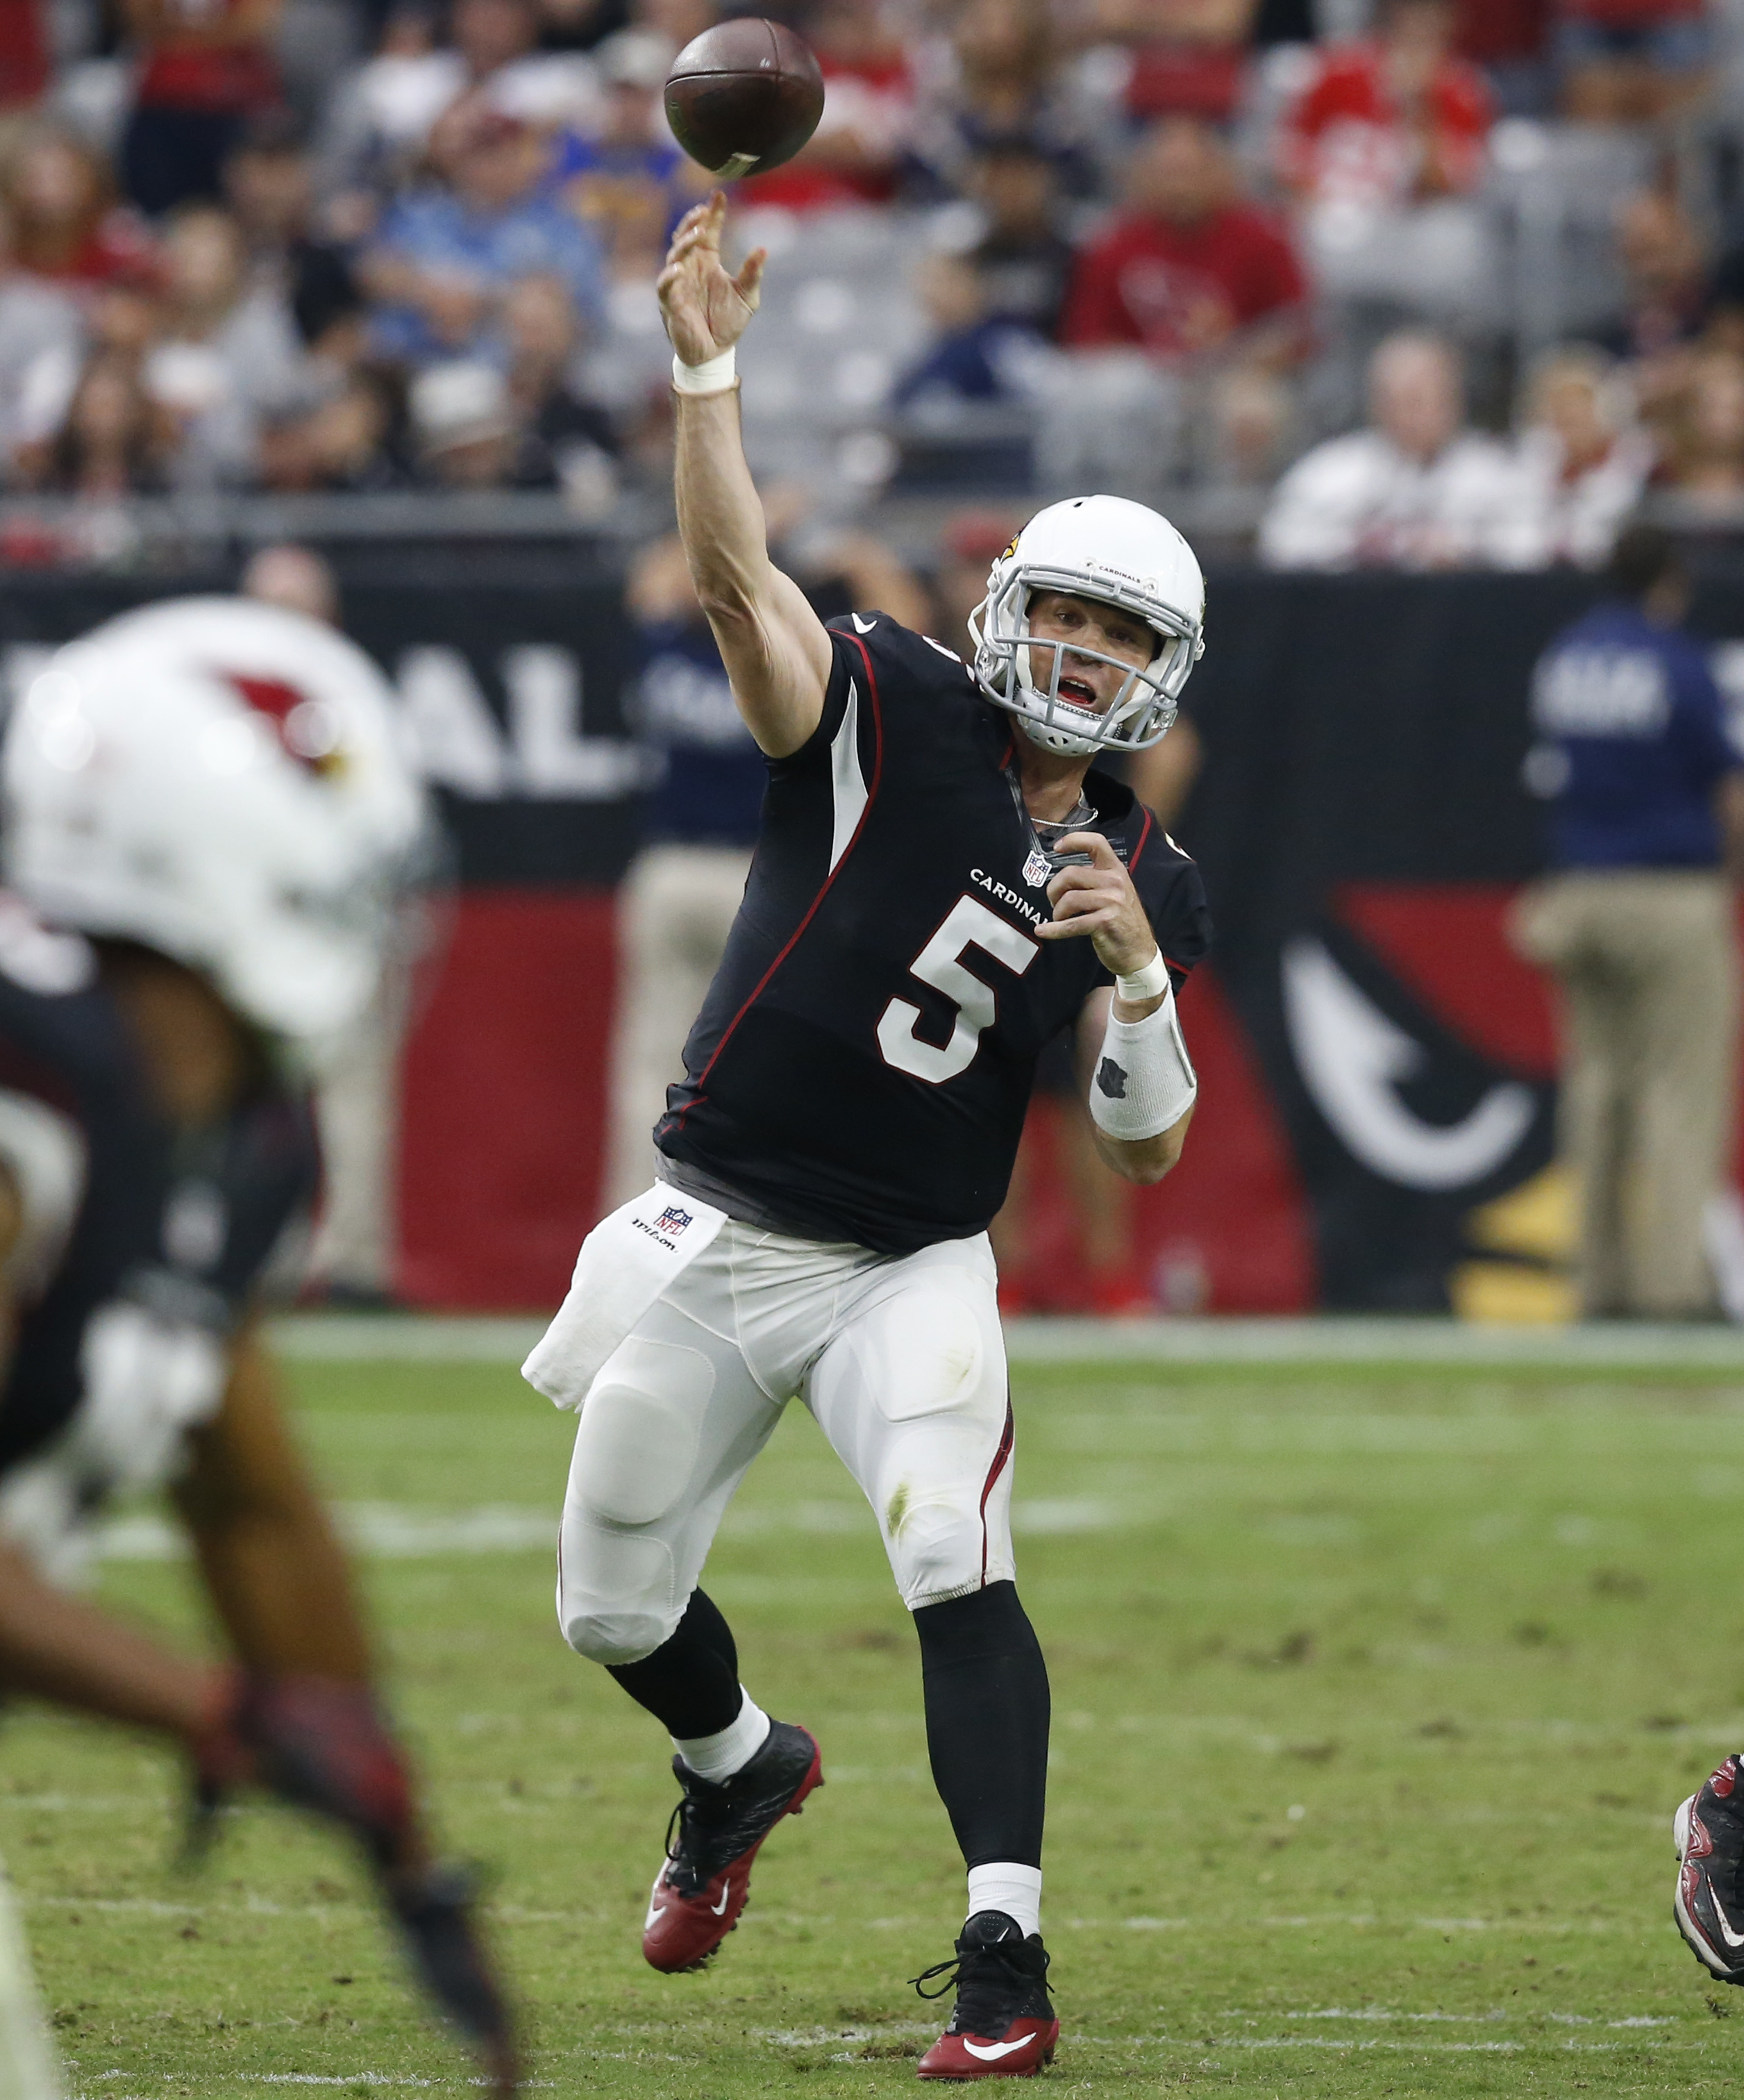 Arizona Cardinals quarterback Drew Stanton (5) throws against the Los Angeles Rams during the second half of NFL football game, Sunday, Oct. 2, 2016, in Glendale, Ariz. The Rams won 17-13. (AP Photo/Ross D. Franklin)